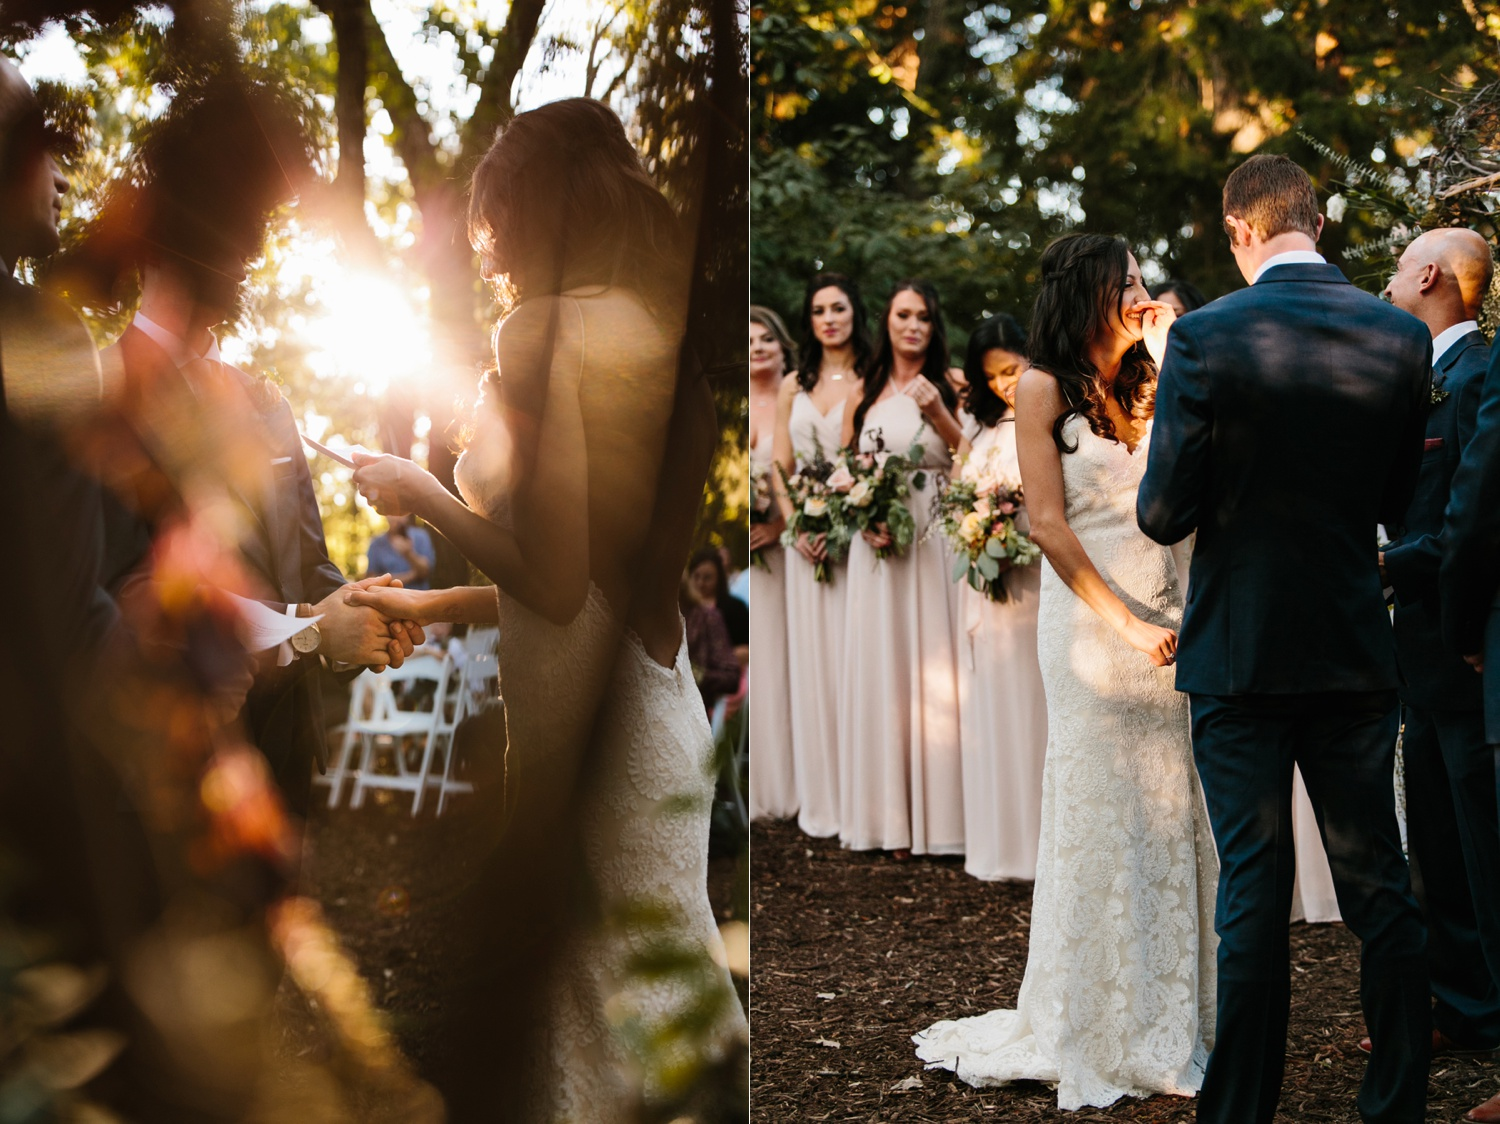 Erica + Henry | a bohemian inspired wedding at Chandlers Gardens in Salina, TX by North Texas Wedding Photographer Rachel Meagan Photography 084